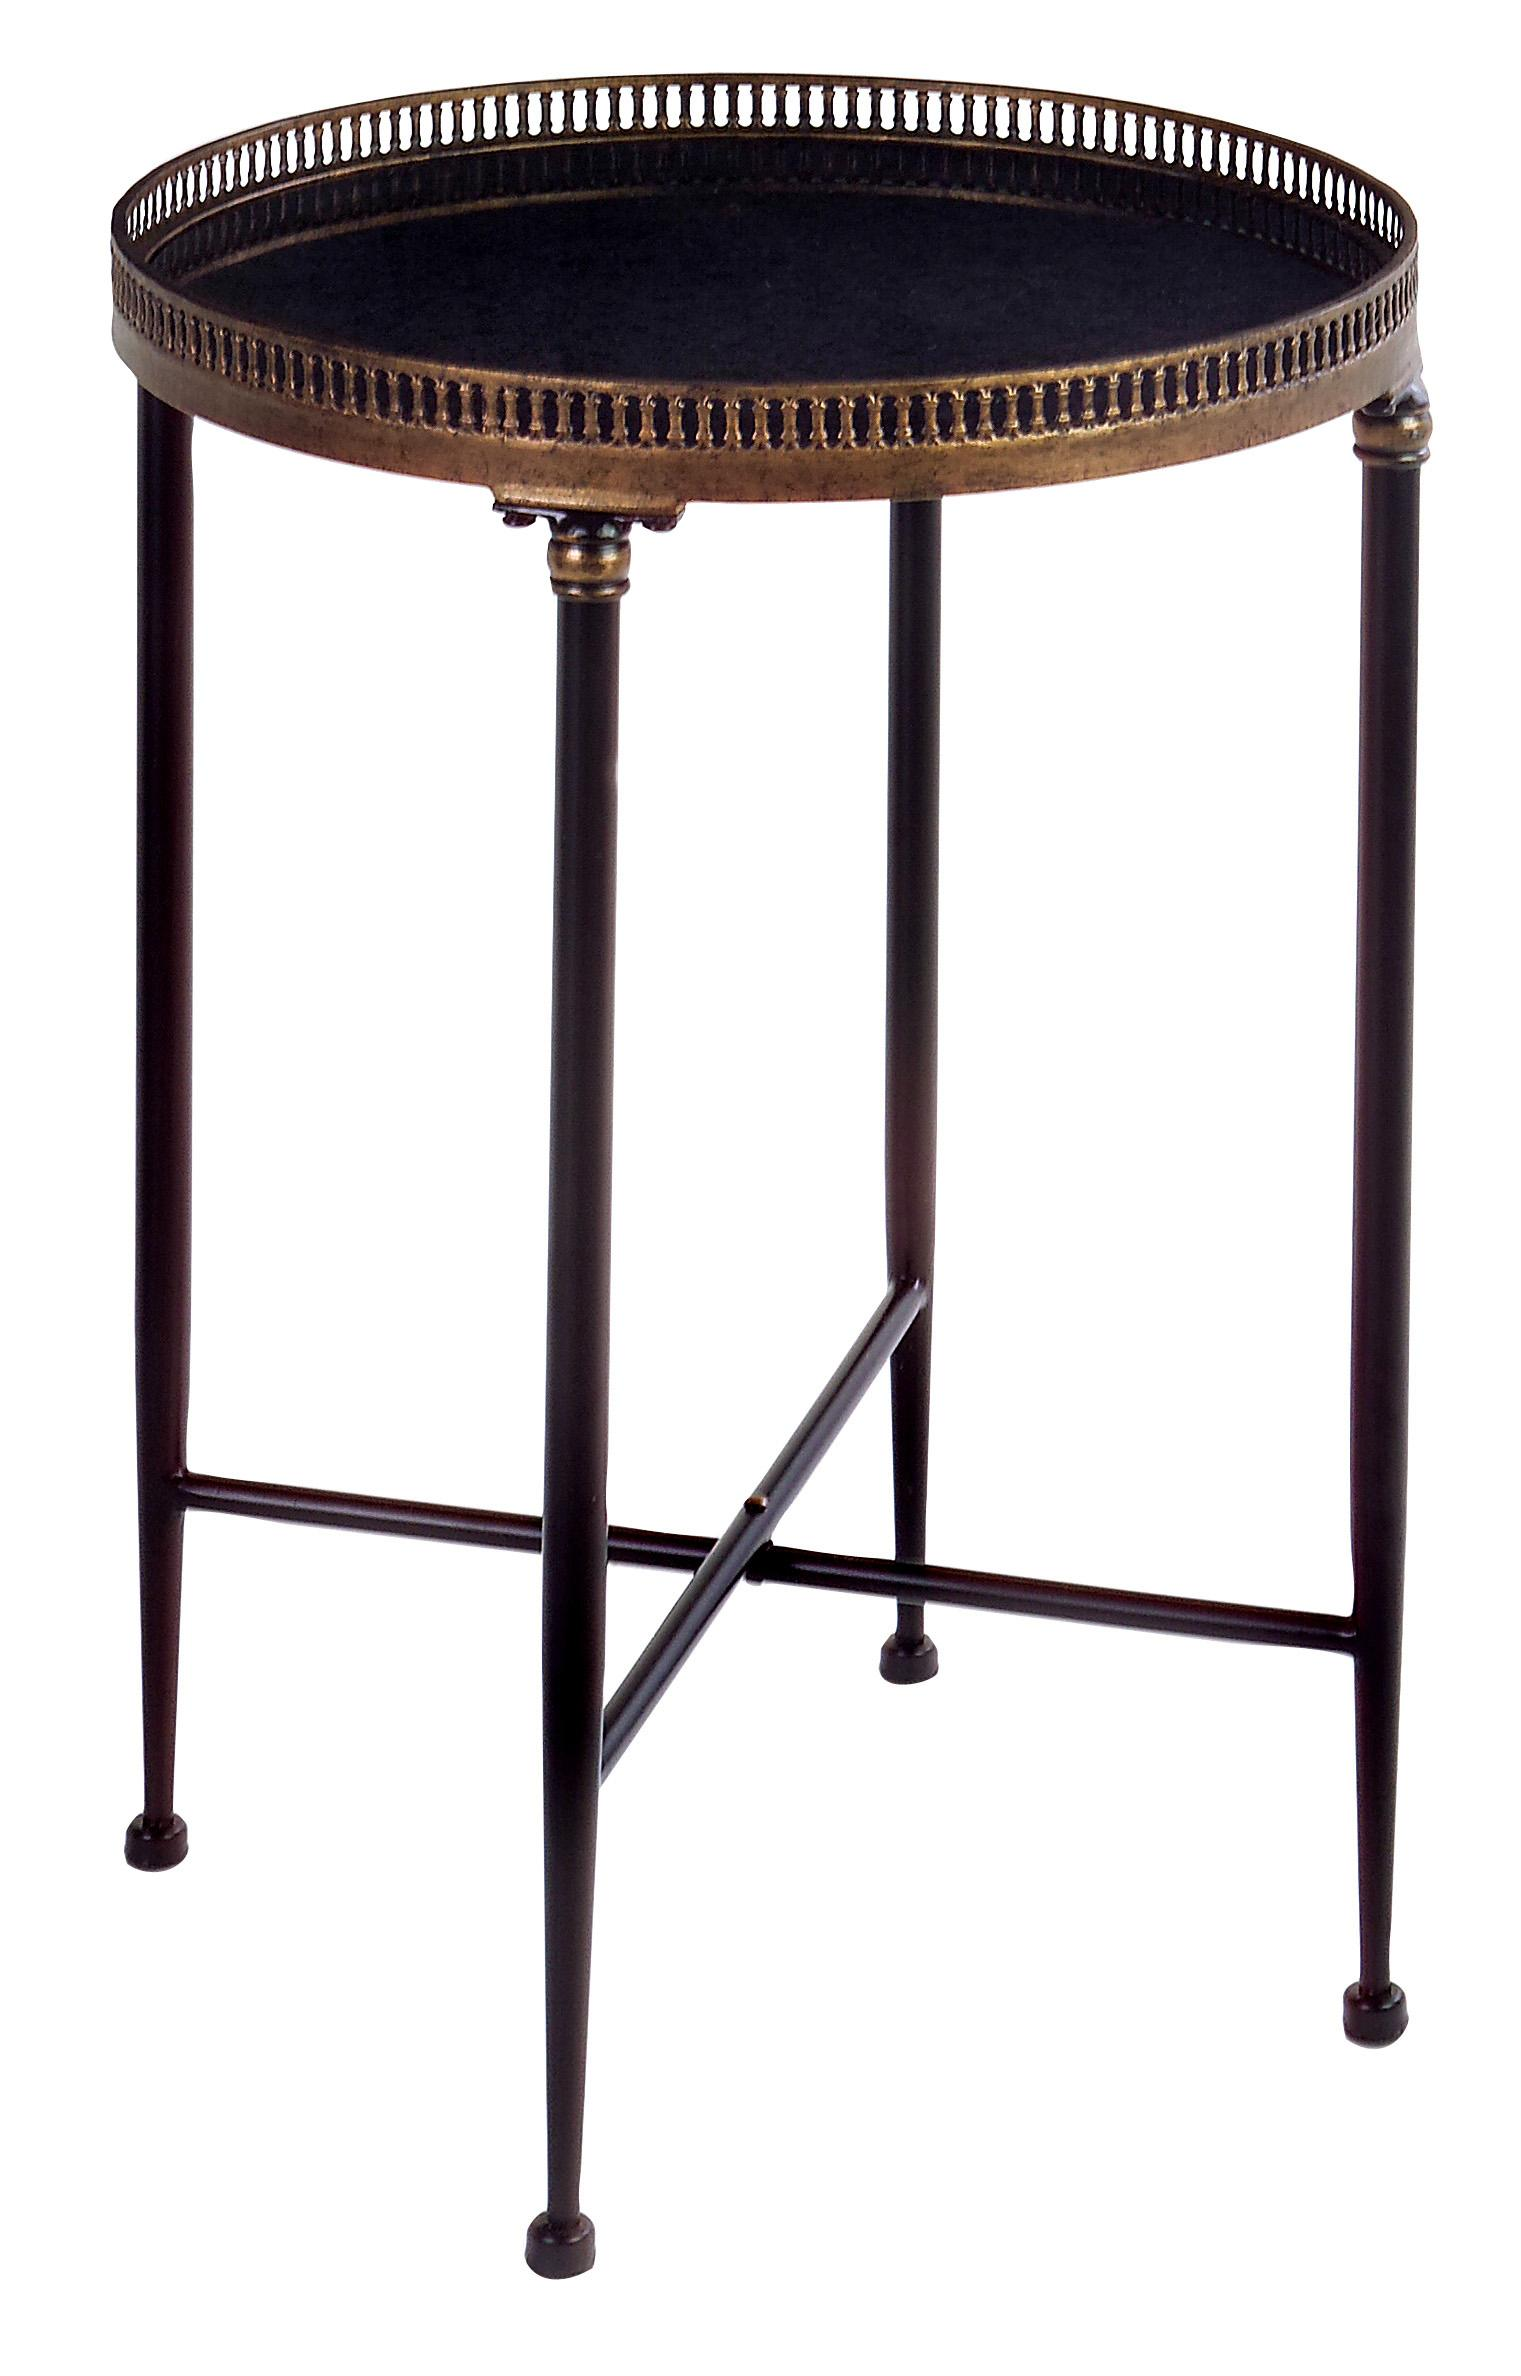 round accent table bernhardt drum black ojcommerce winsome timmy jcpenney recliners made coffee farmhouse drop leaf build your own high end tables acrylic side kmart dining chairs